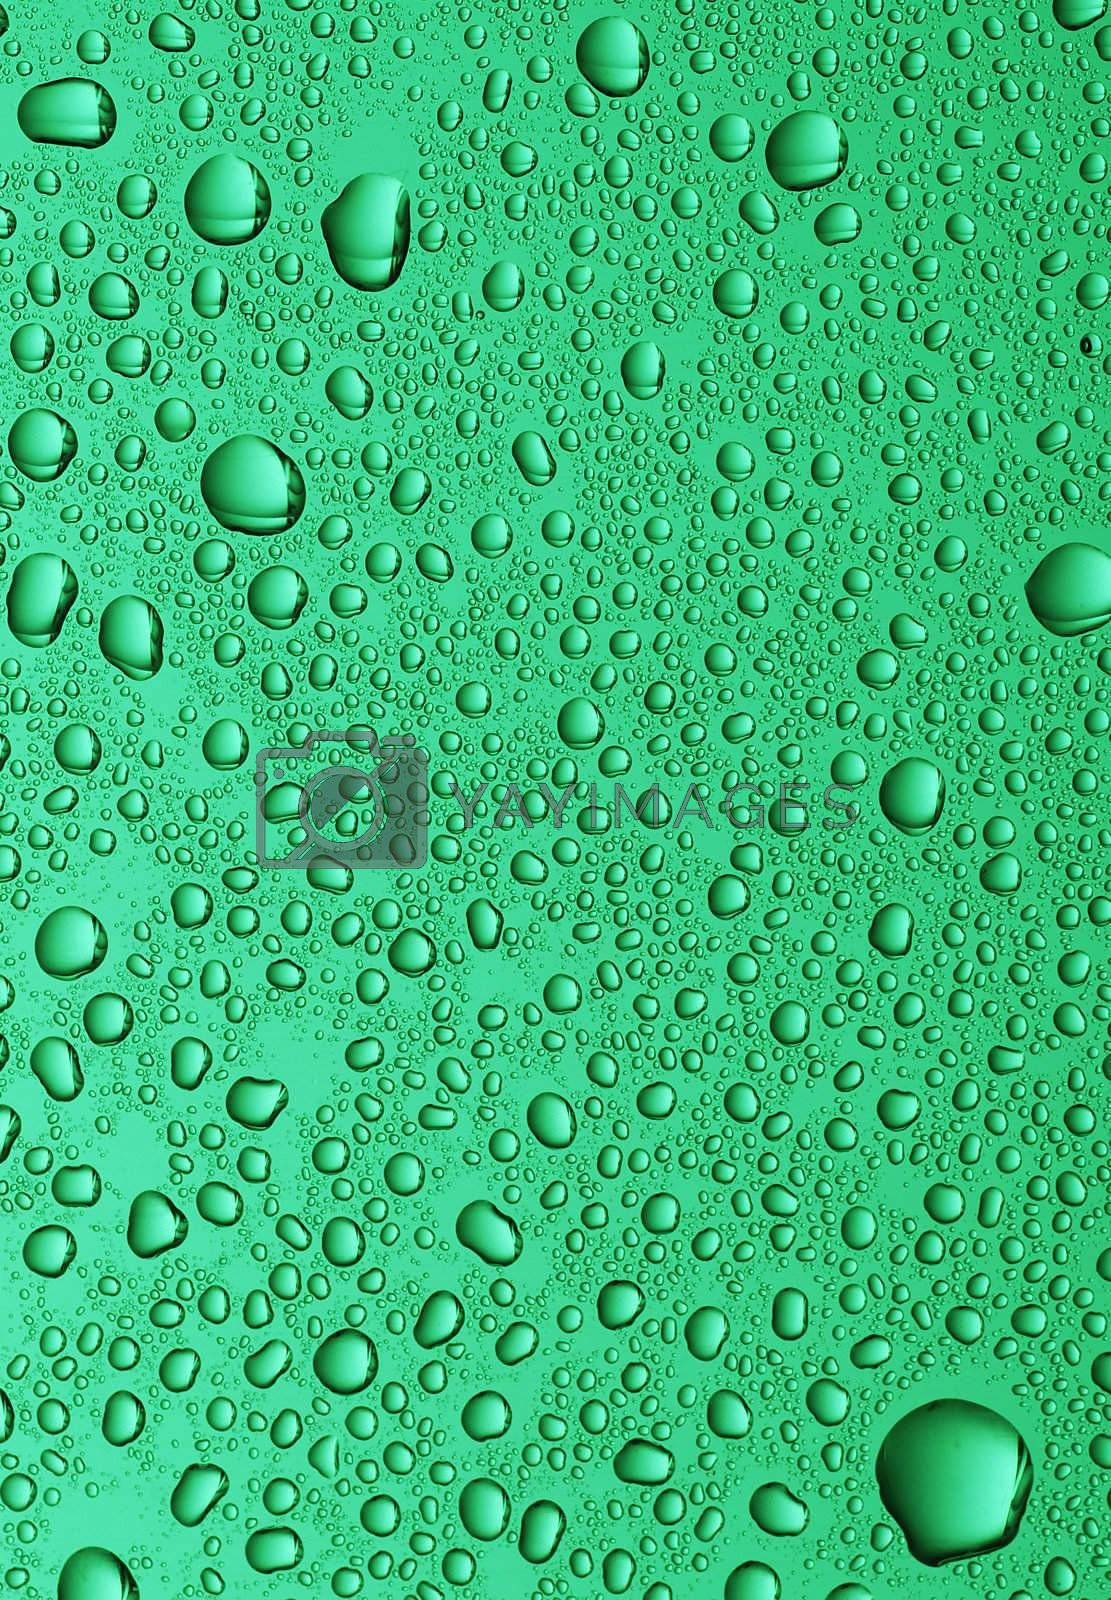 small water drops by massman